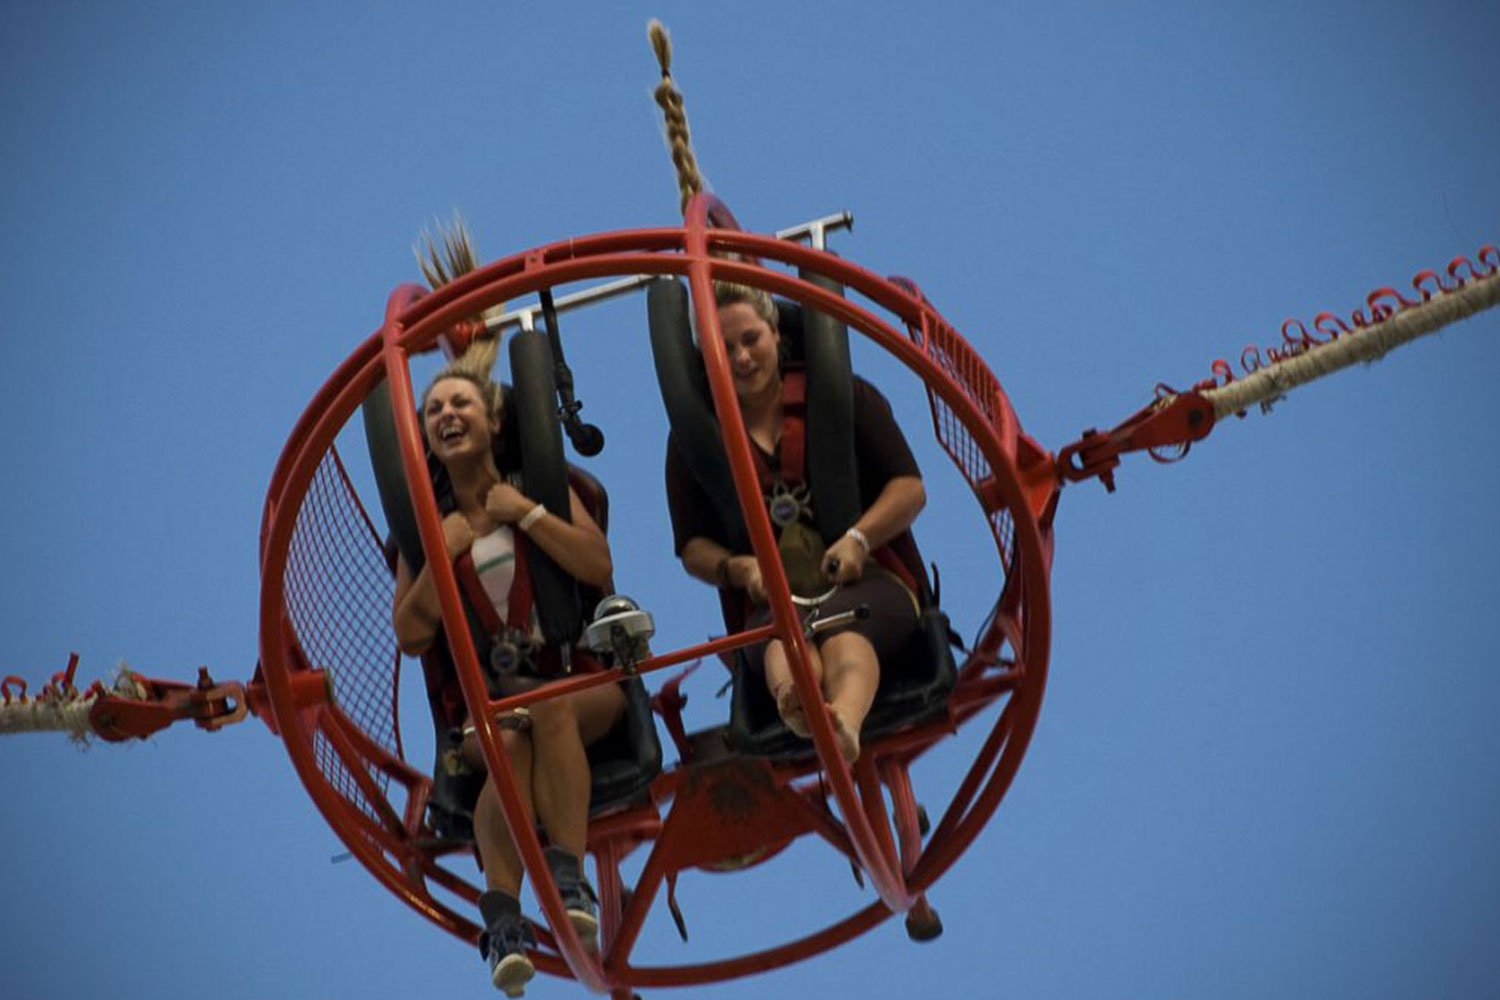 slingshot rides rollercoaster cyprus ayia napa protaras limassol nicosia pahos luxcy services